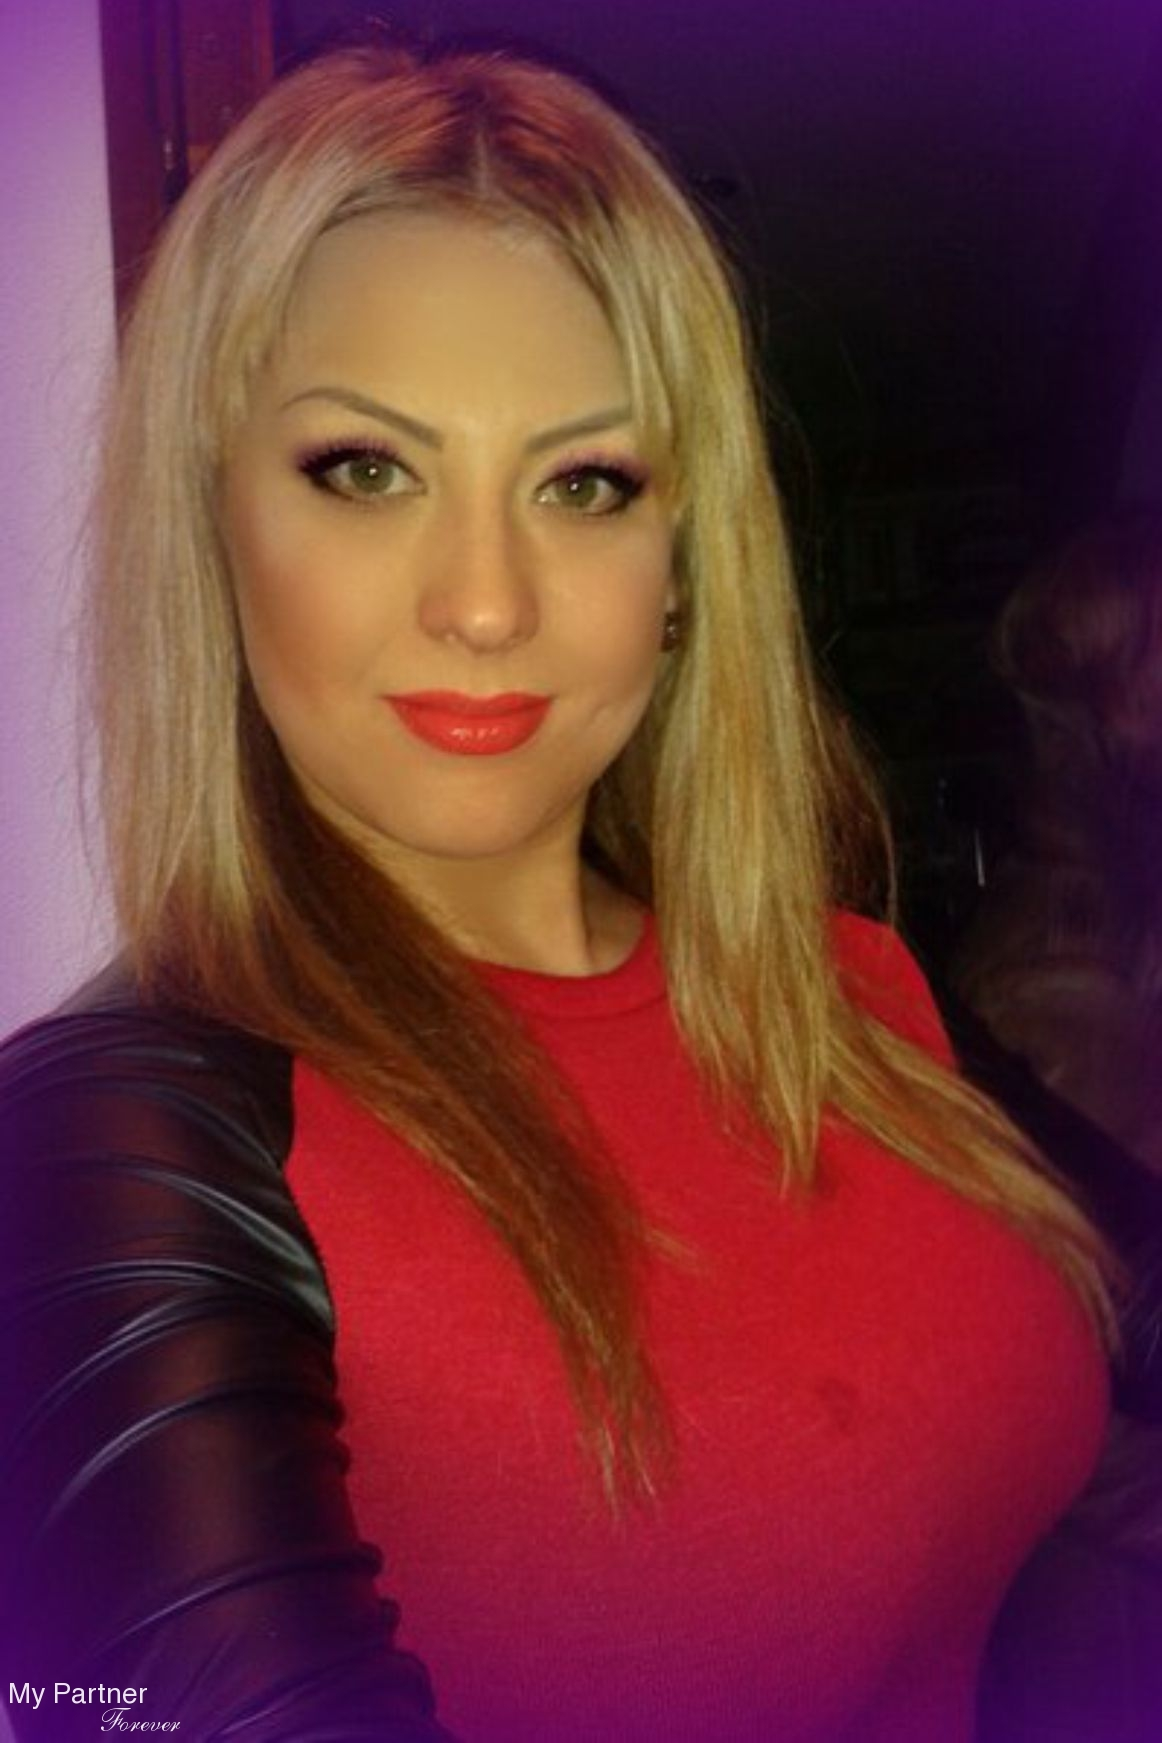 halstad singles dating site 1000s of single men in halstad dating signup free and start meeting local halstad men on bookofmatchescom.